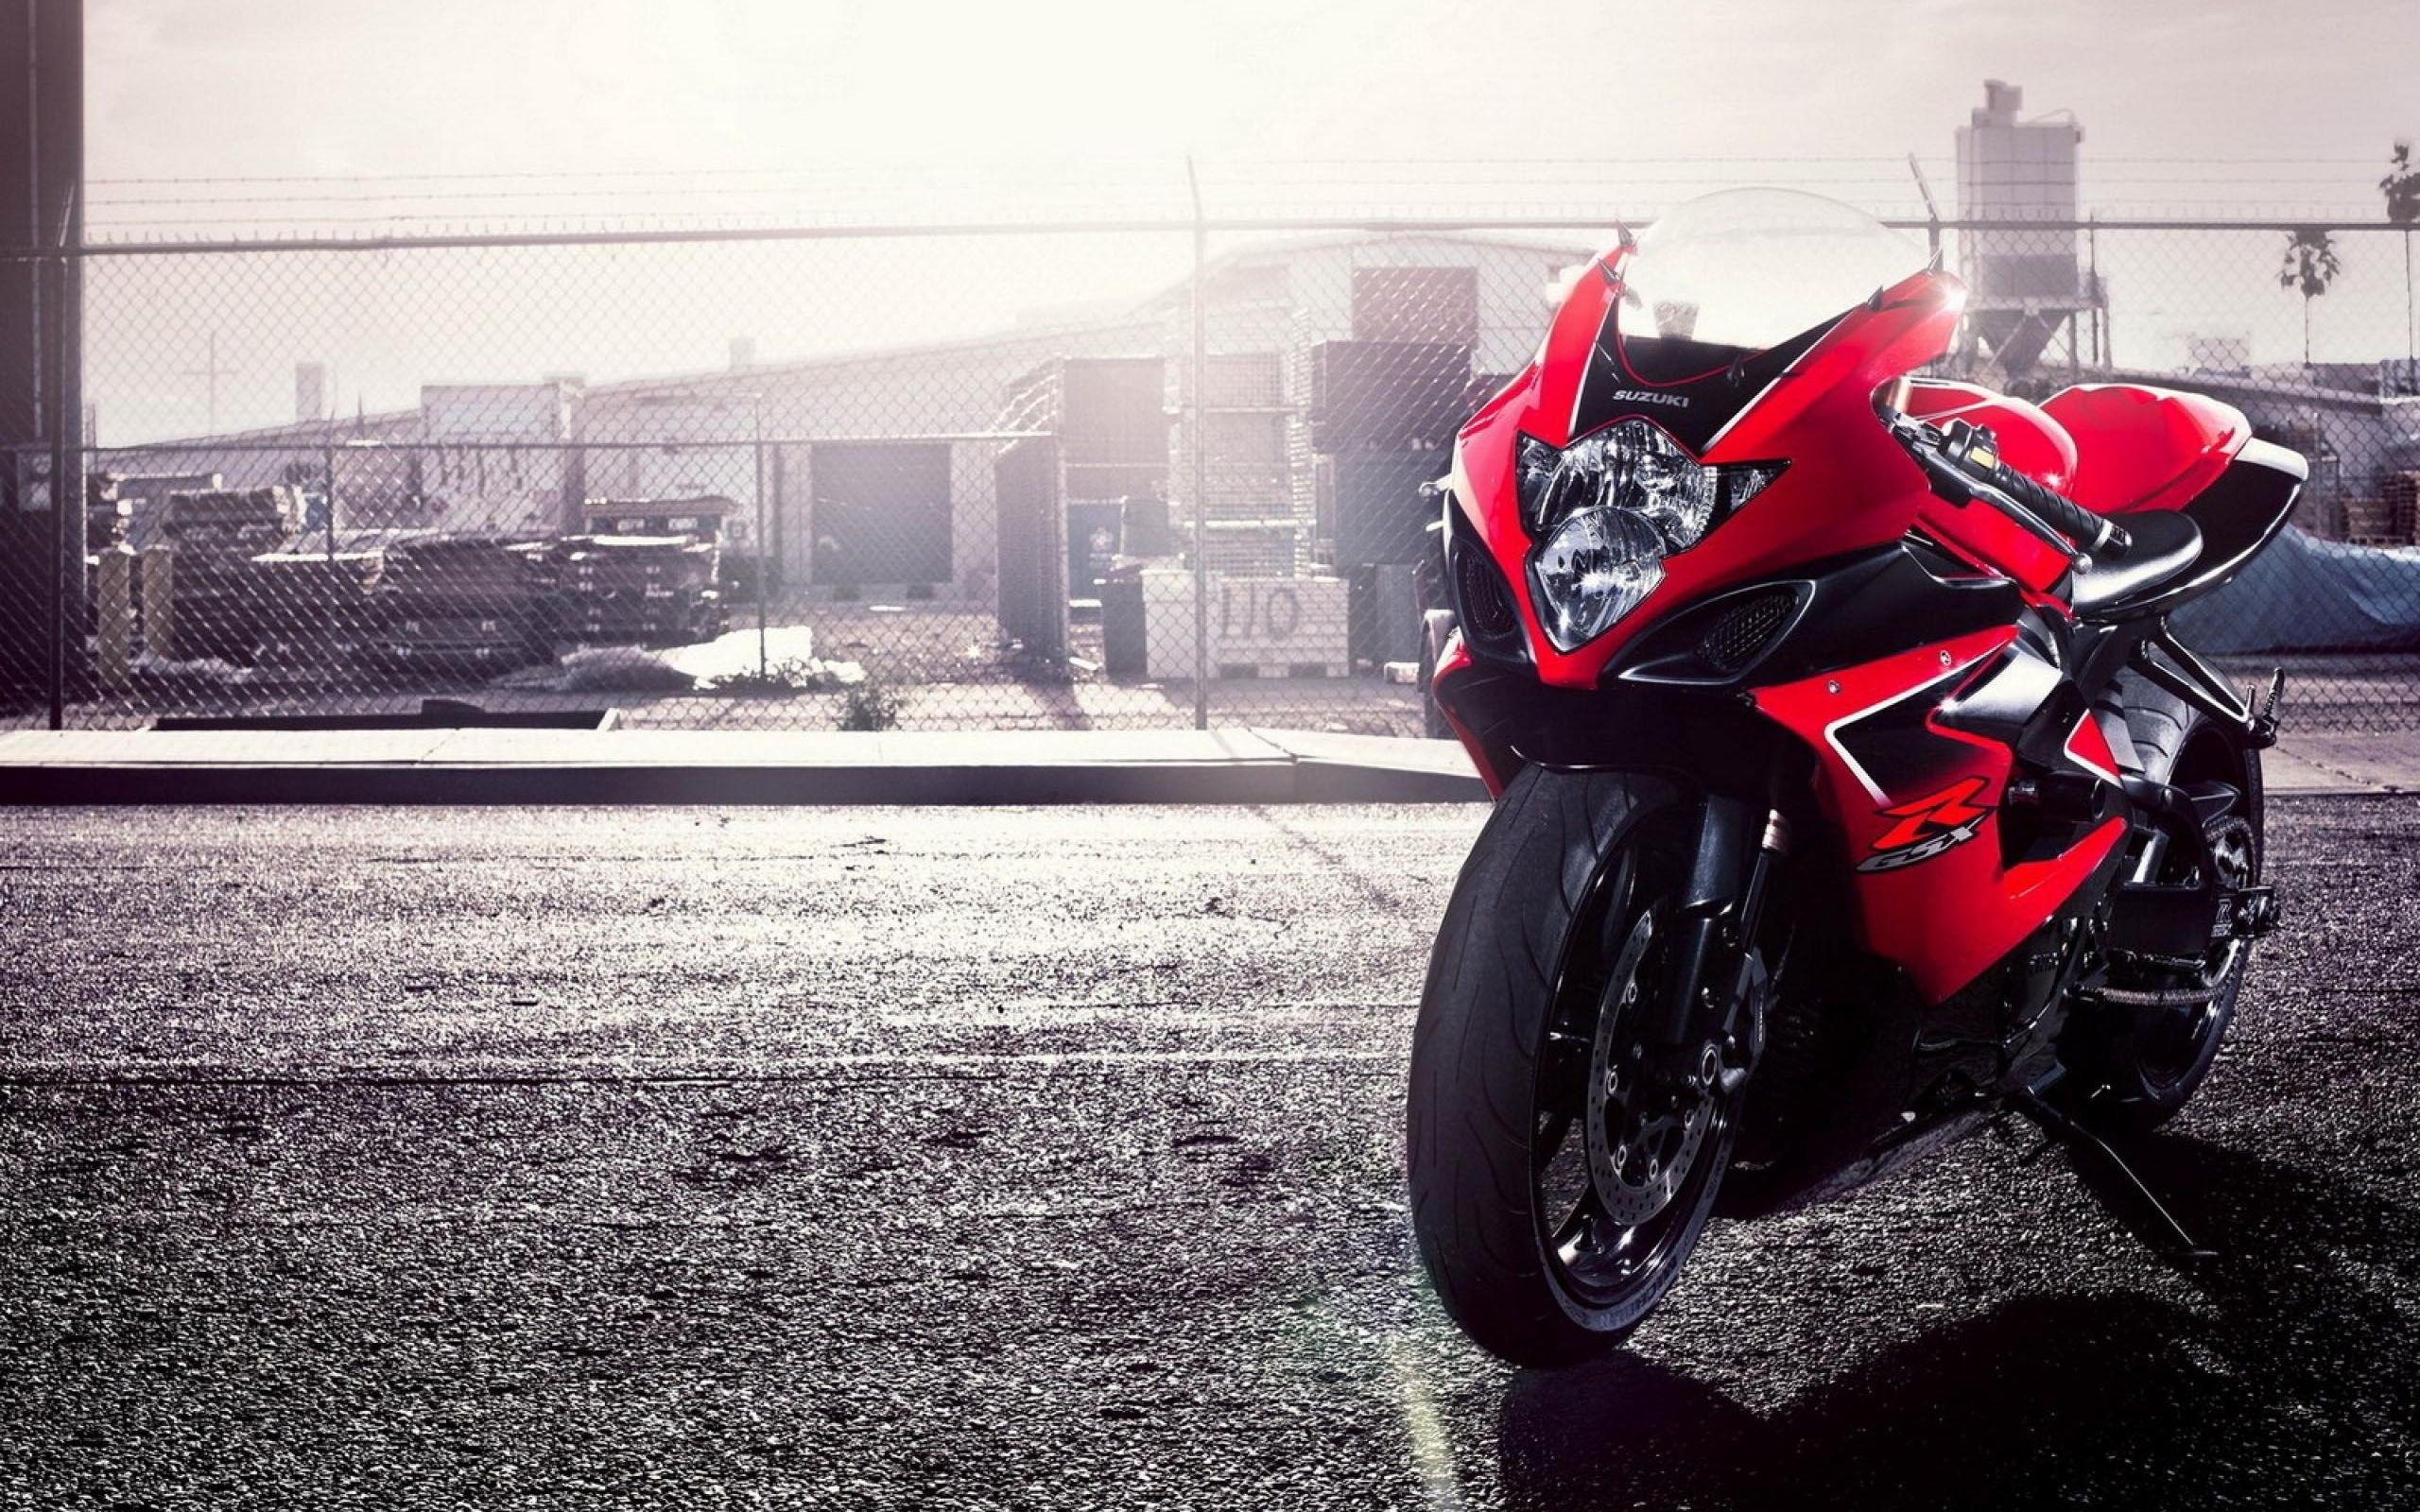 Street Bike Hd Wallpapers Get The Newest Collection Of Street